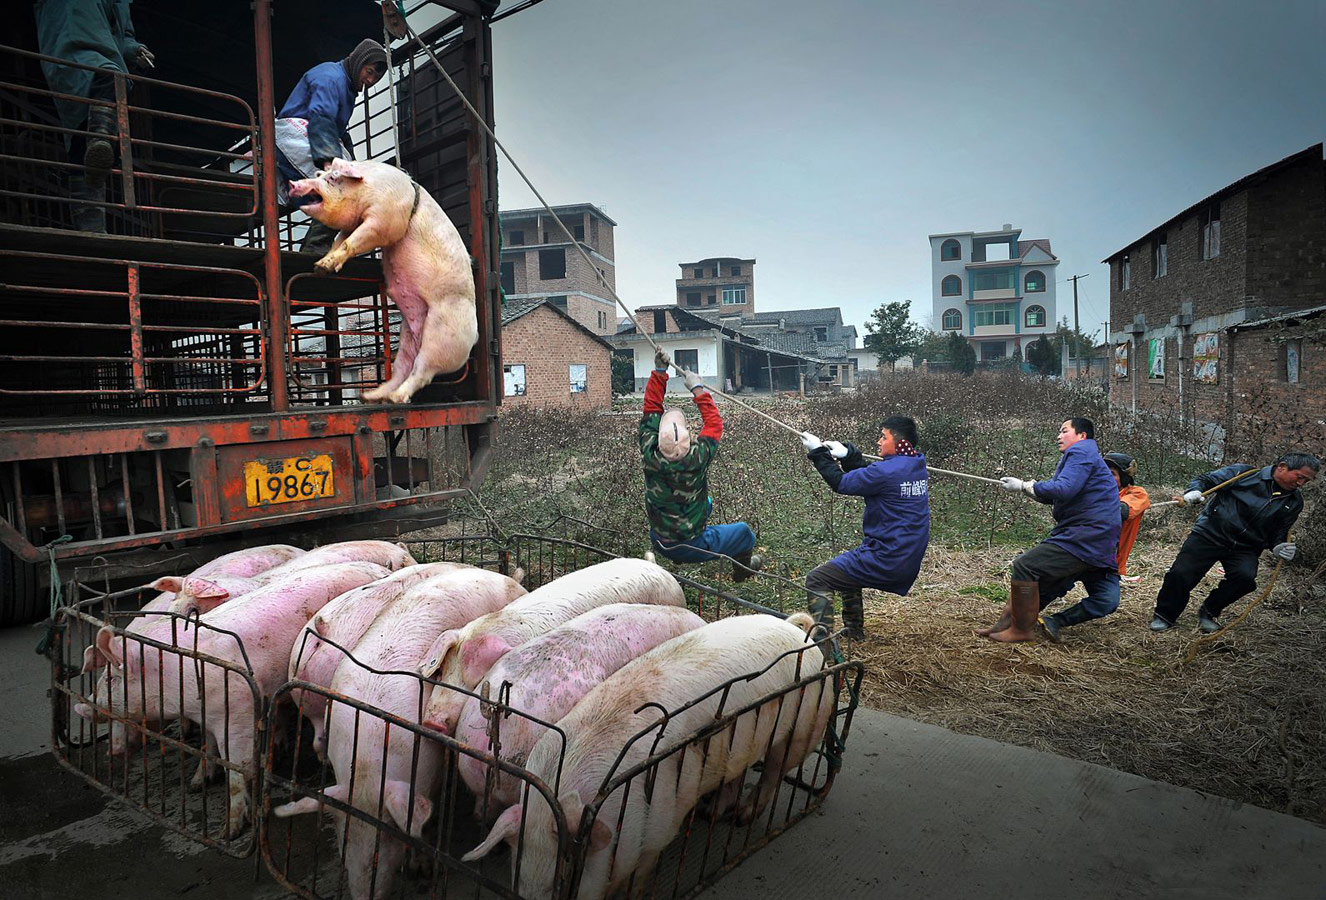 Hanging Pig, © 靖生 Jingsheng 聂 Nie, China, 3rd Place Single, LensCulture Street Photography Awards